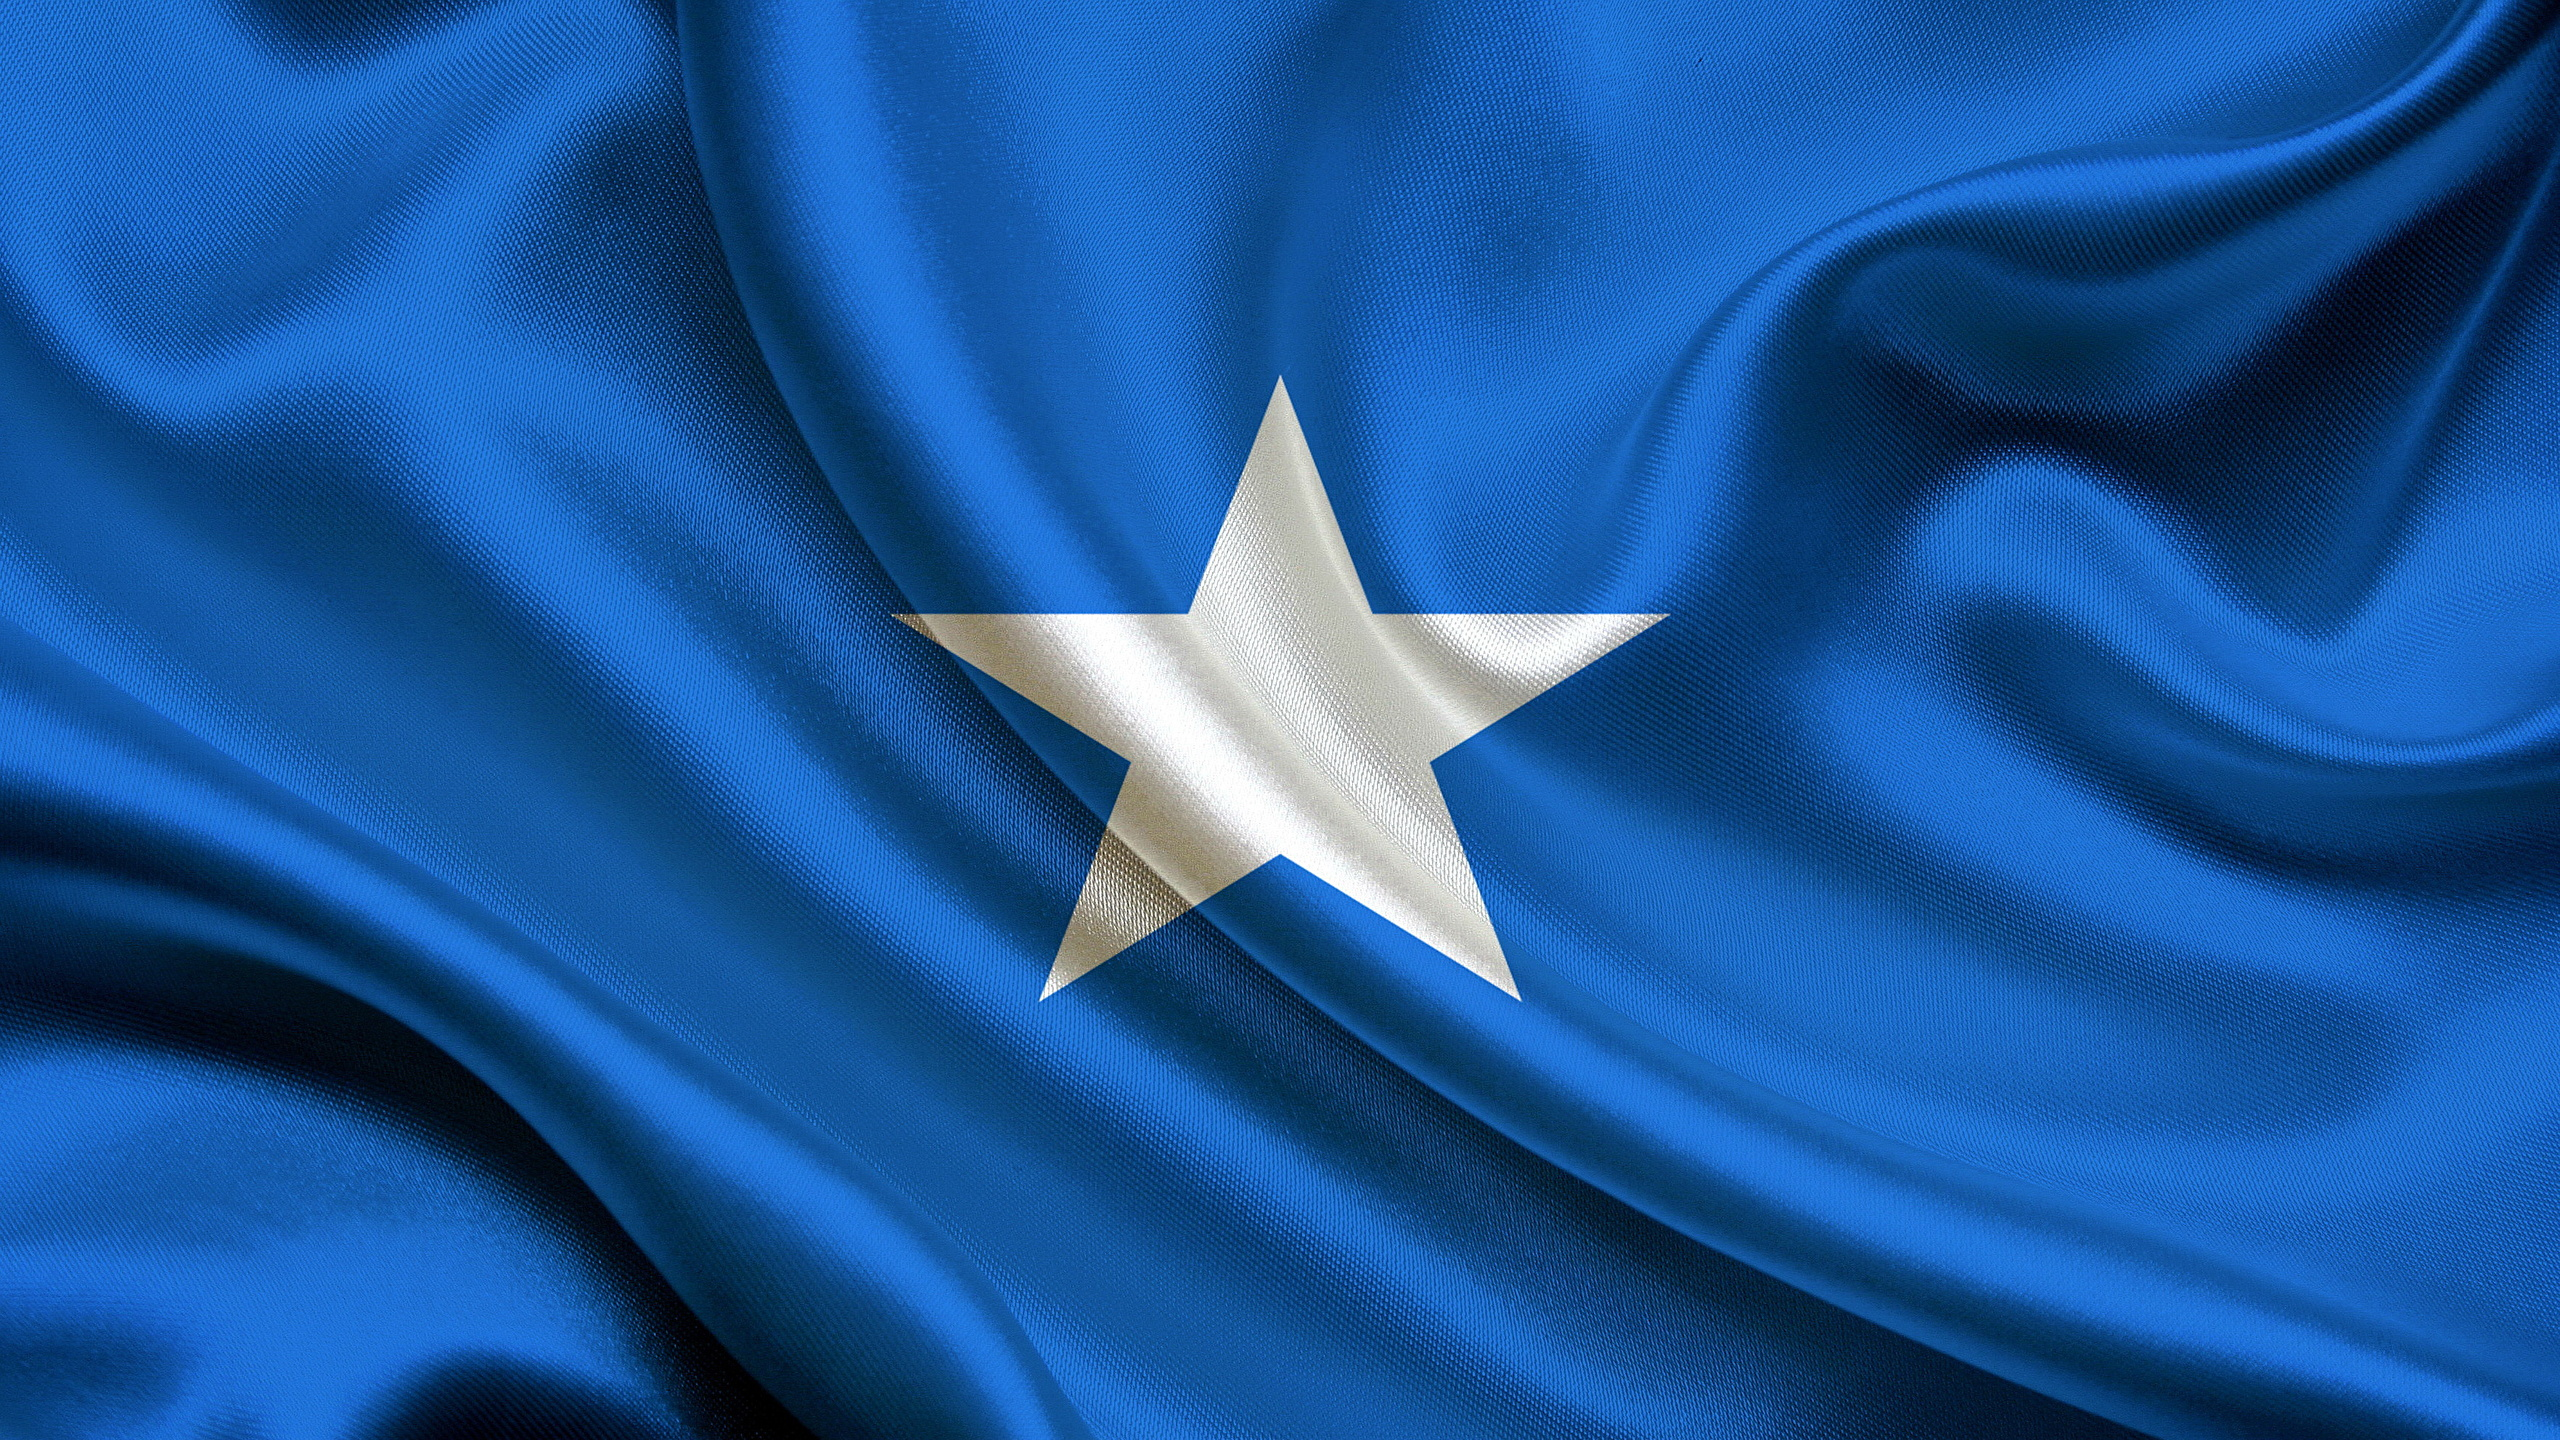 Wallpapers Somalia Flag 2560x1440